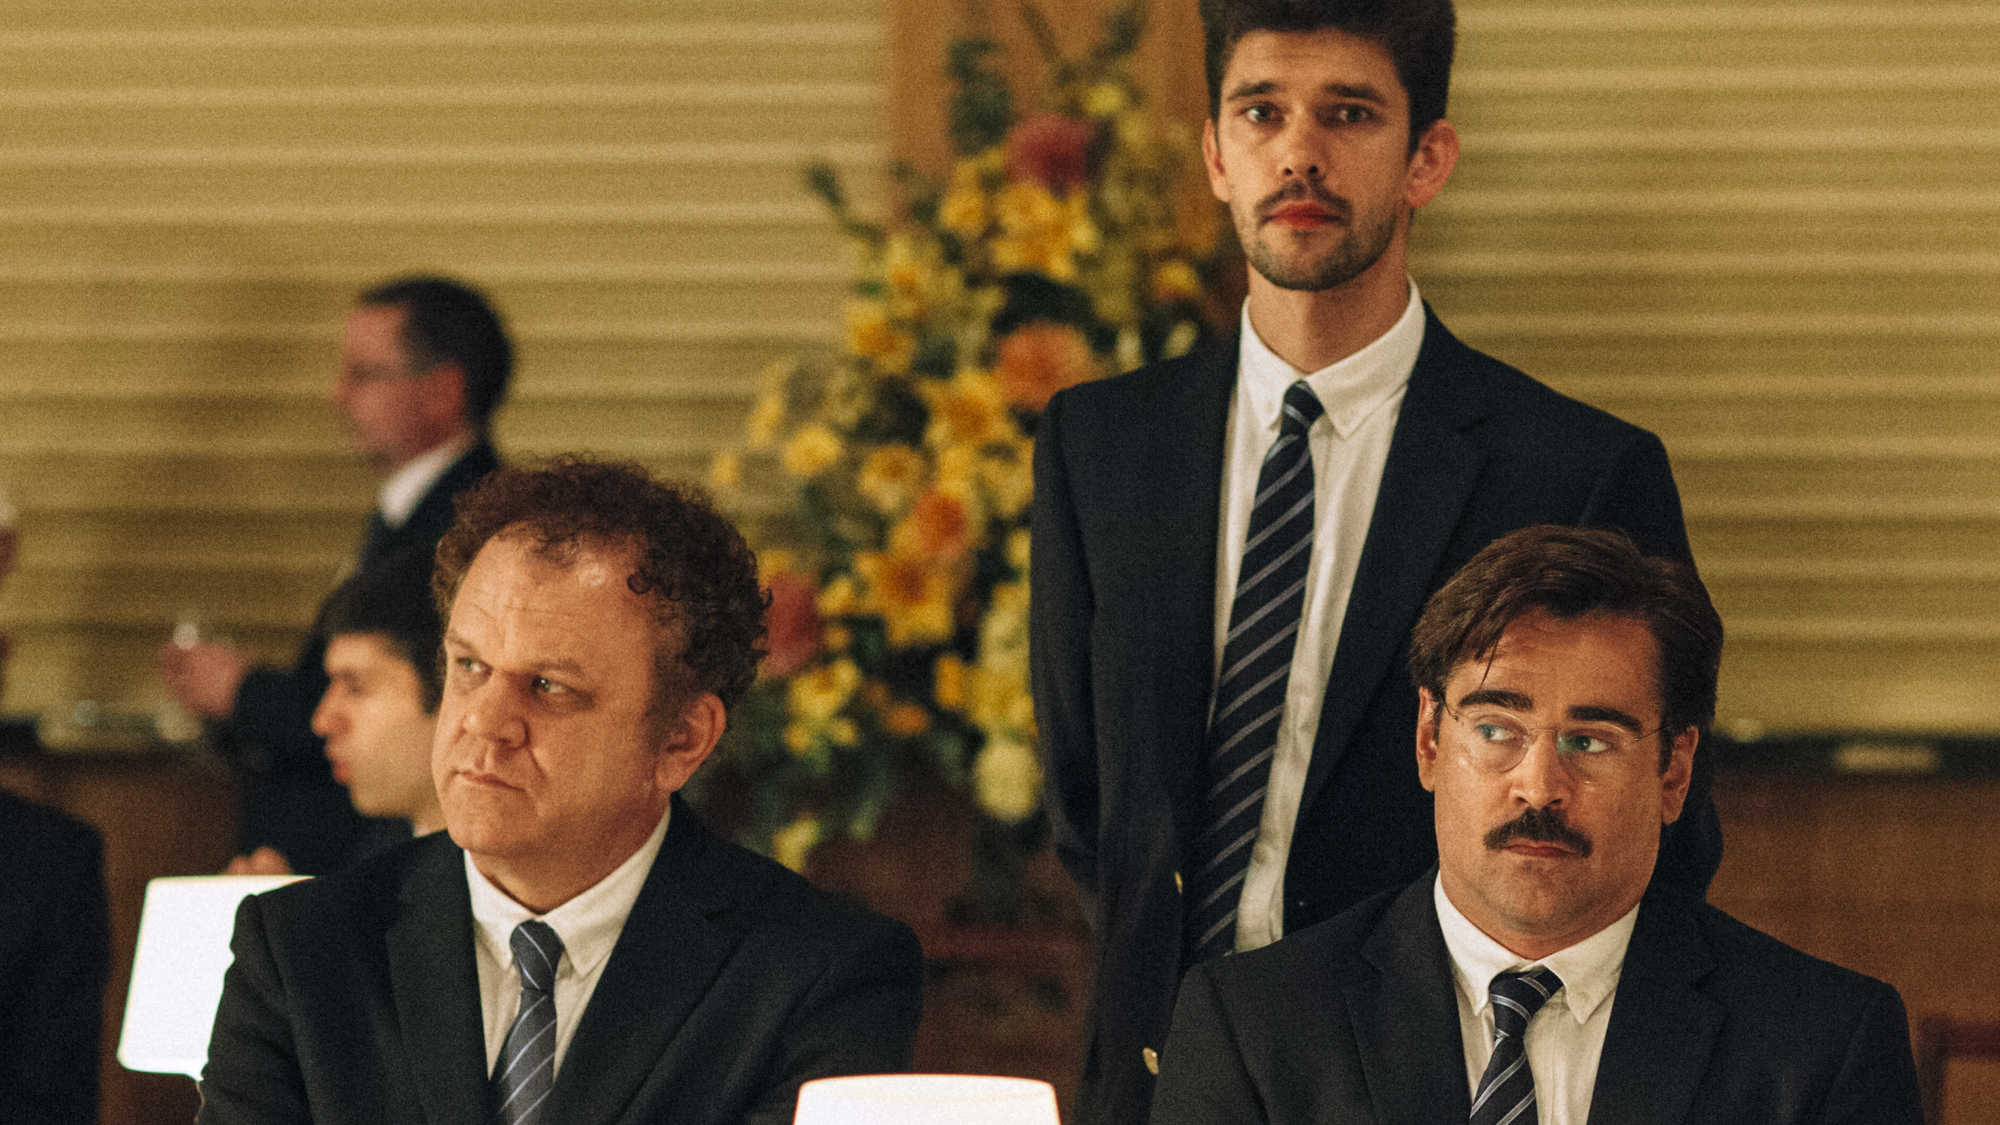 The Lobster (image 1)